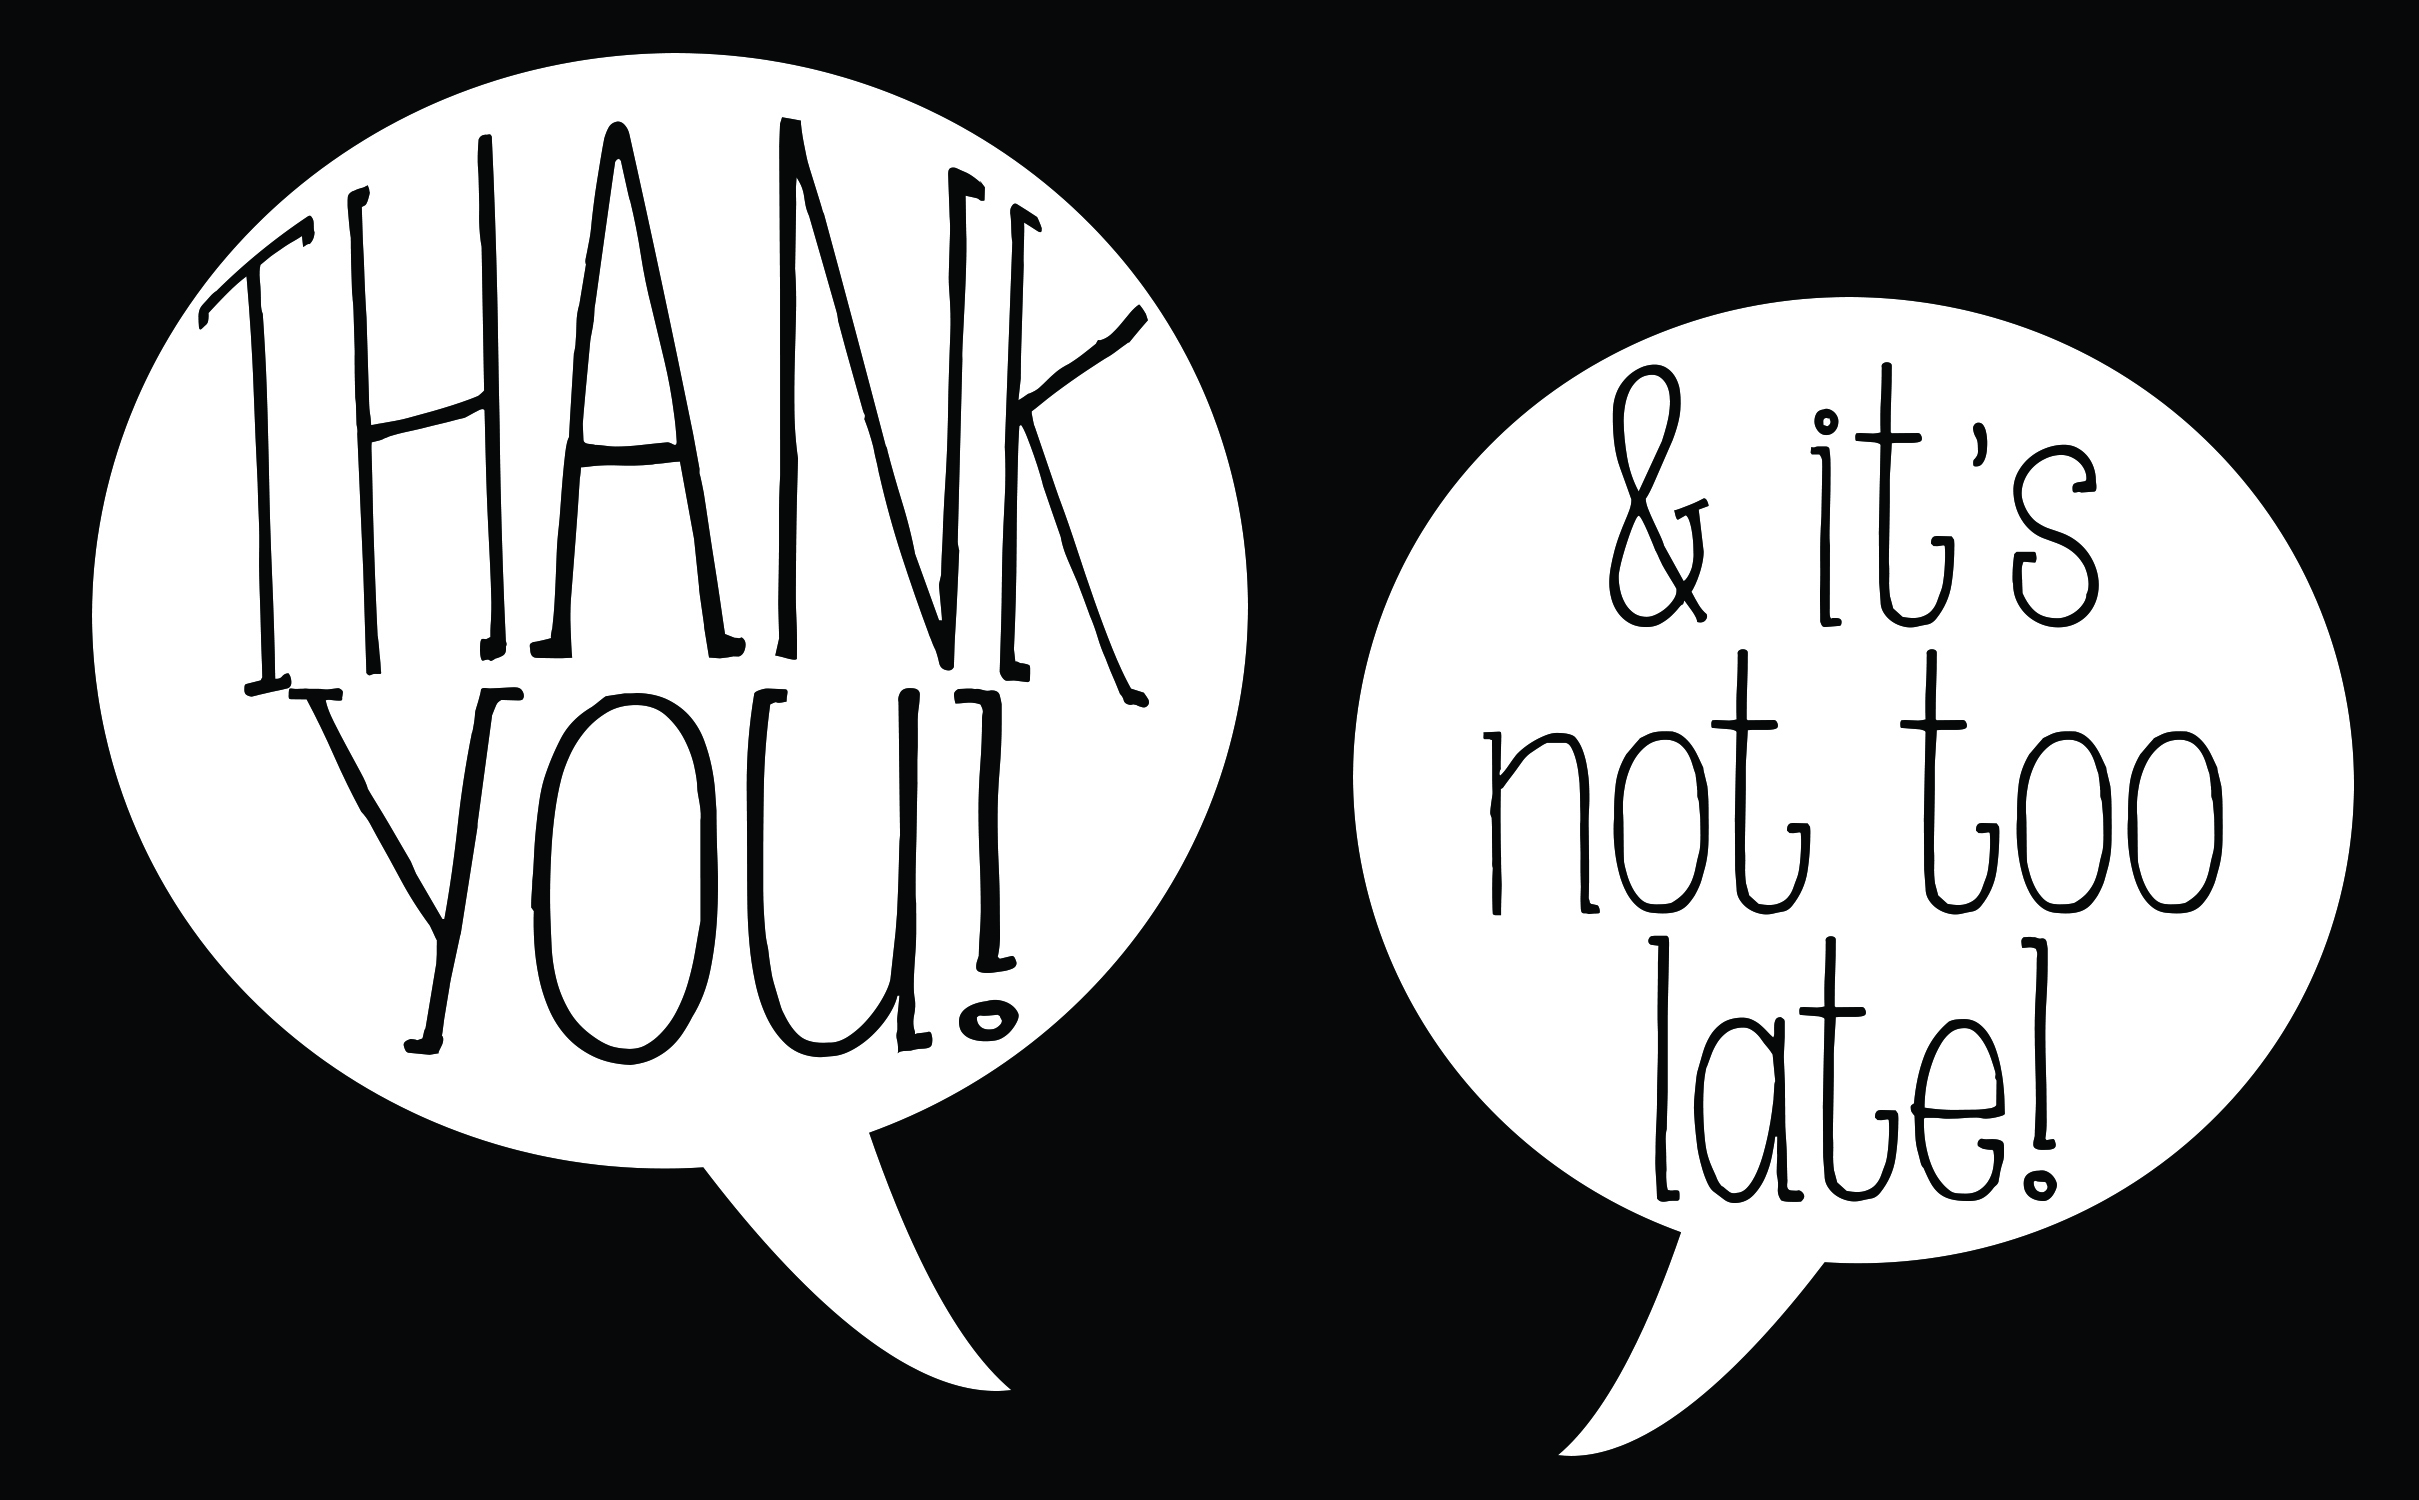 Thank you! And it's not too late!